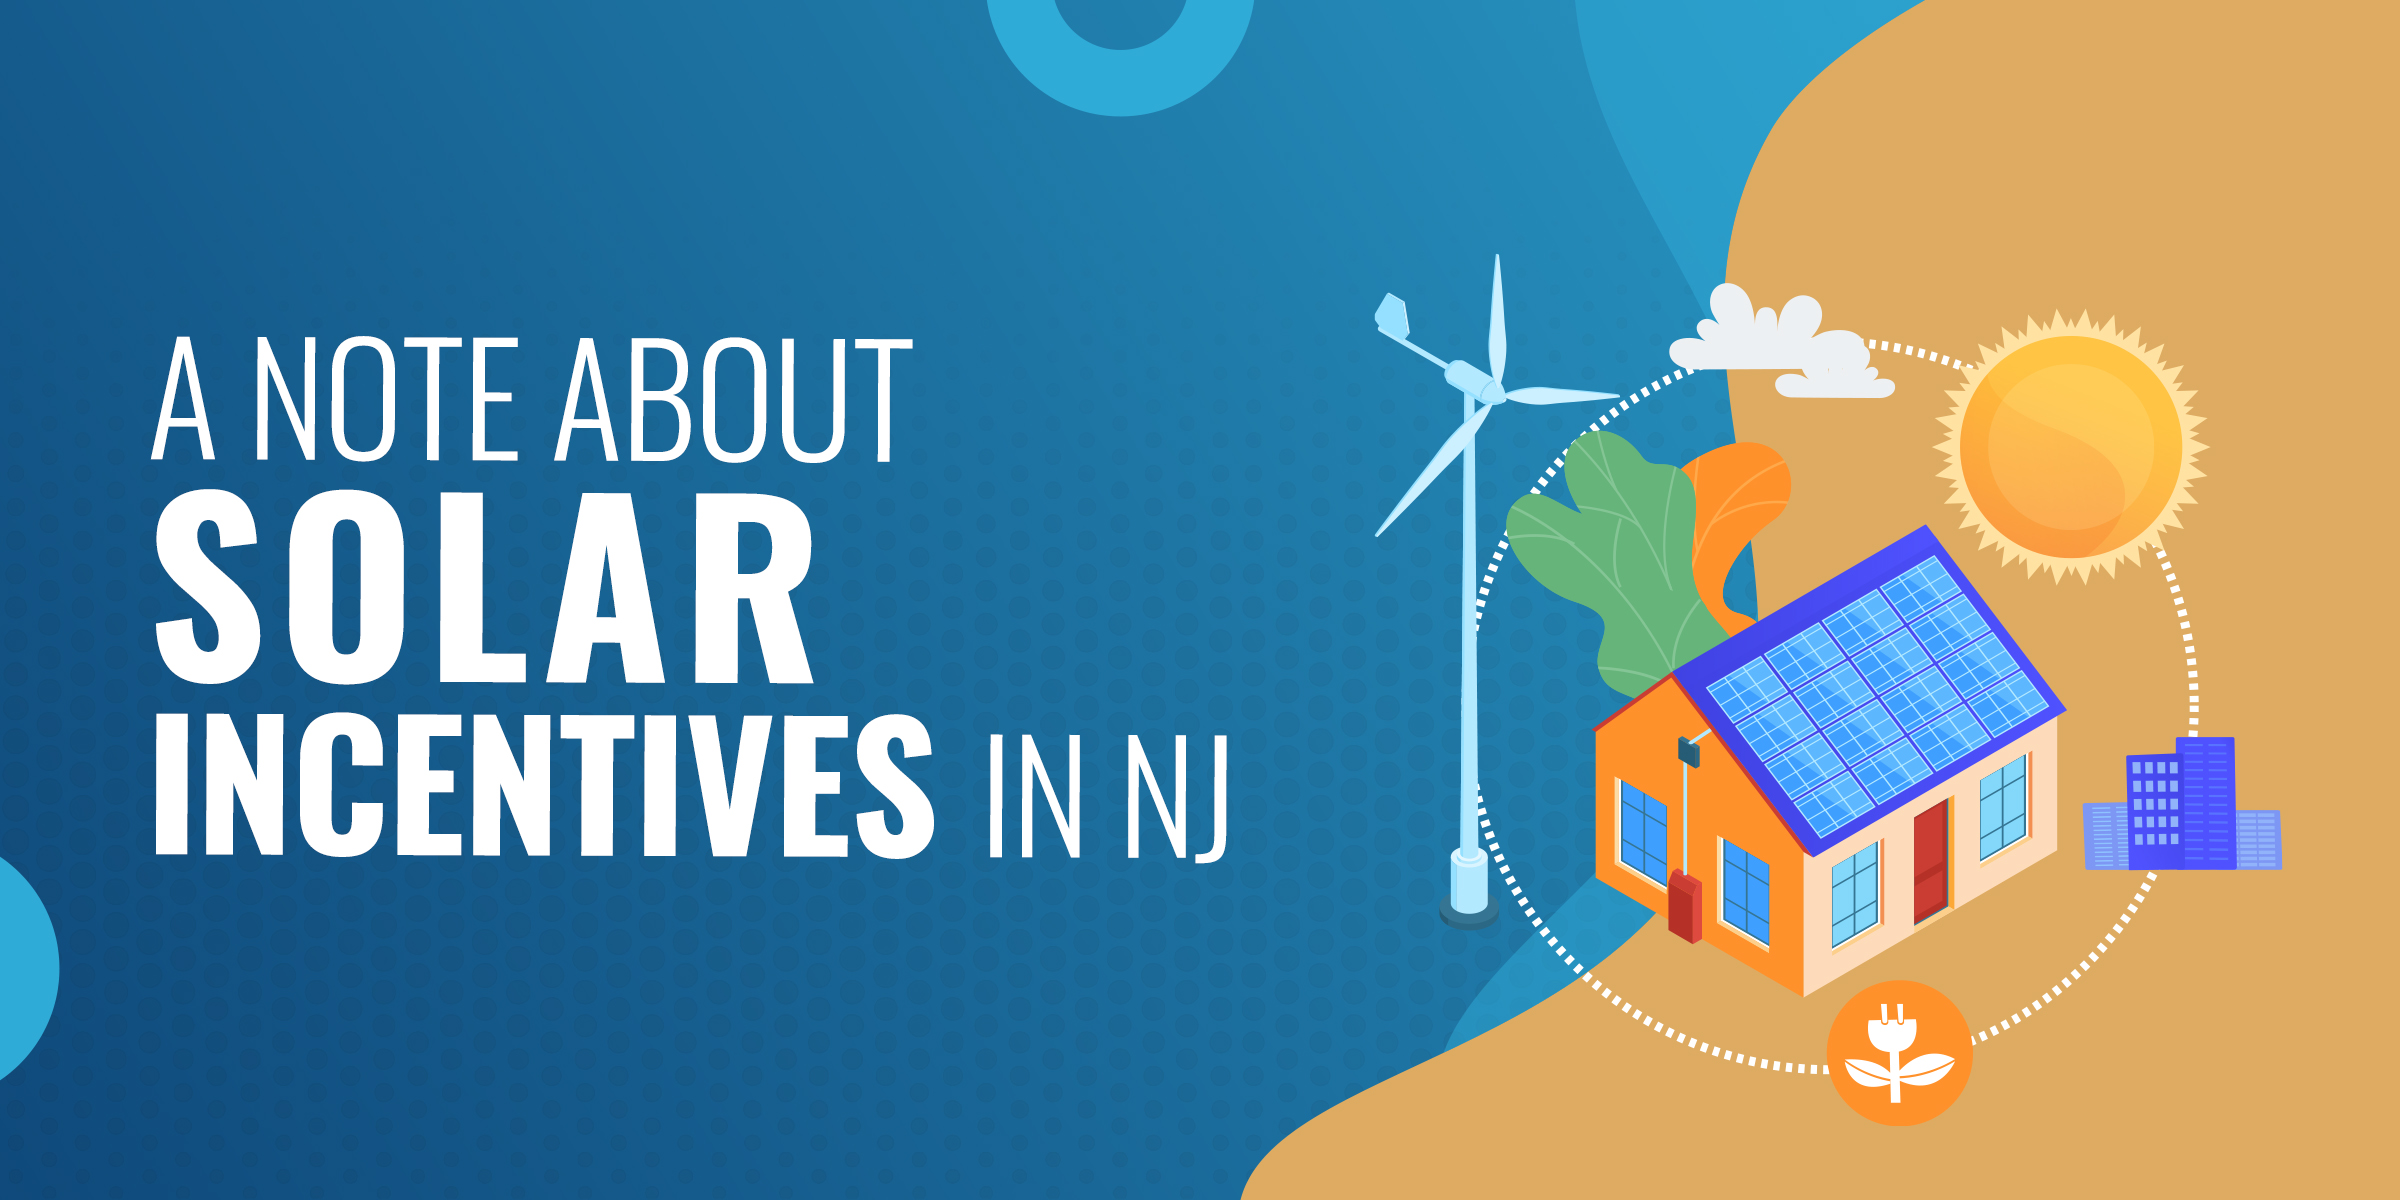 A Note About Solar Incentives in NJ